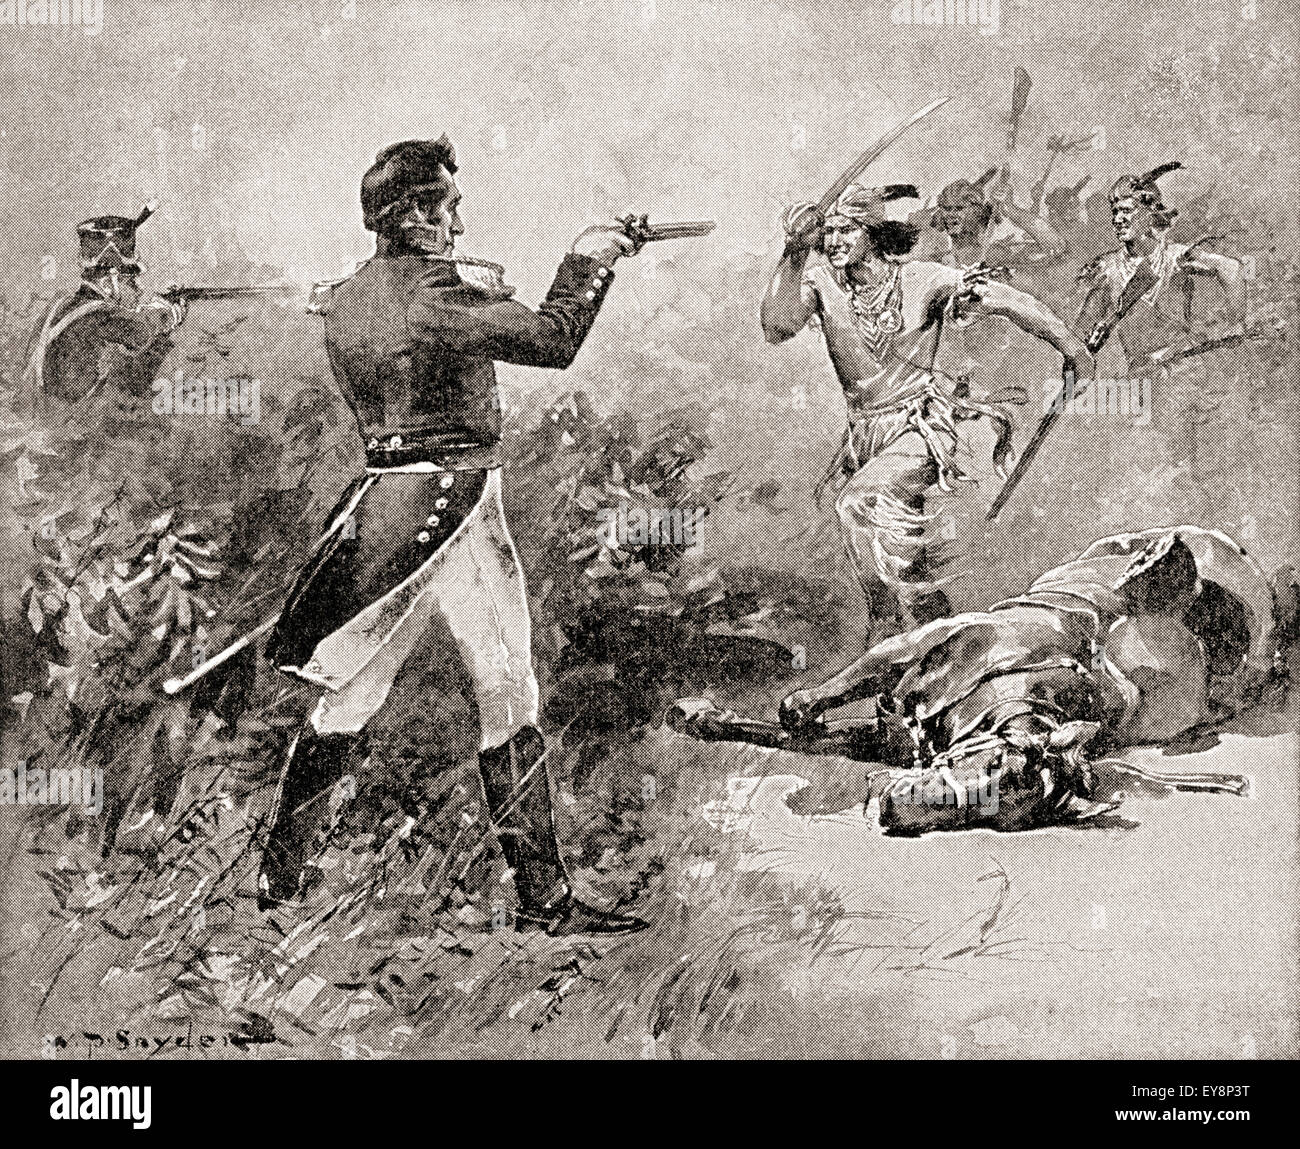 The death of Tecumseh during The Battle of the Thames, October 5, 1813.  Tecumseh, 1768 –1813. Native American leader of the Shawnee and a large  tribal ...